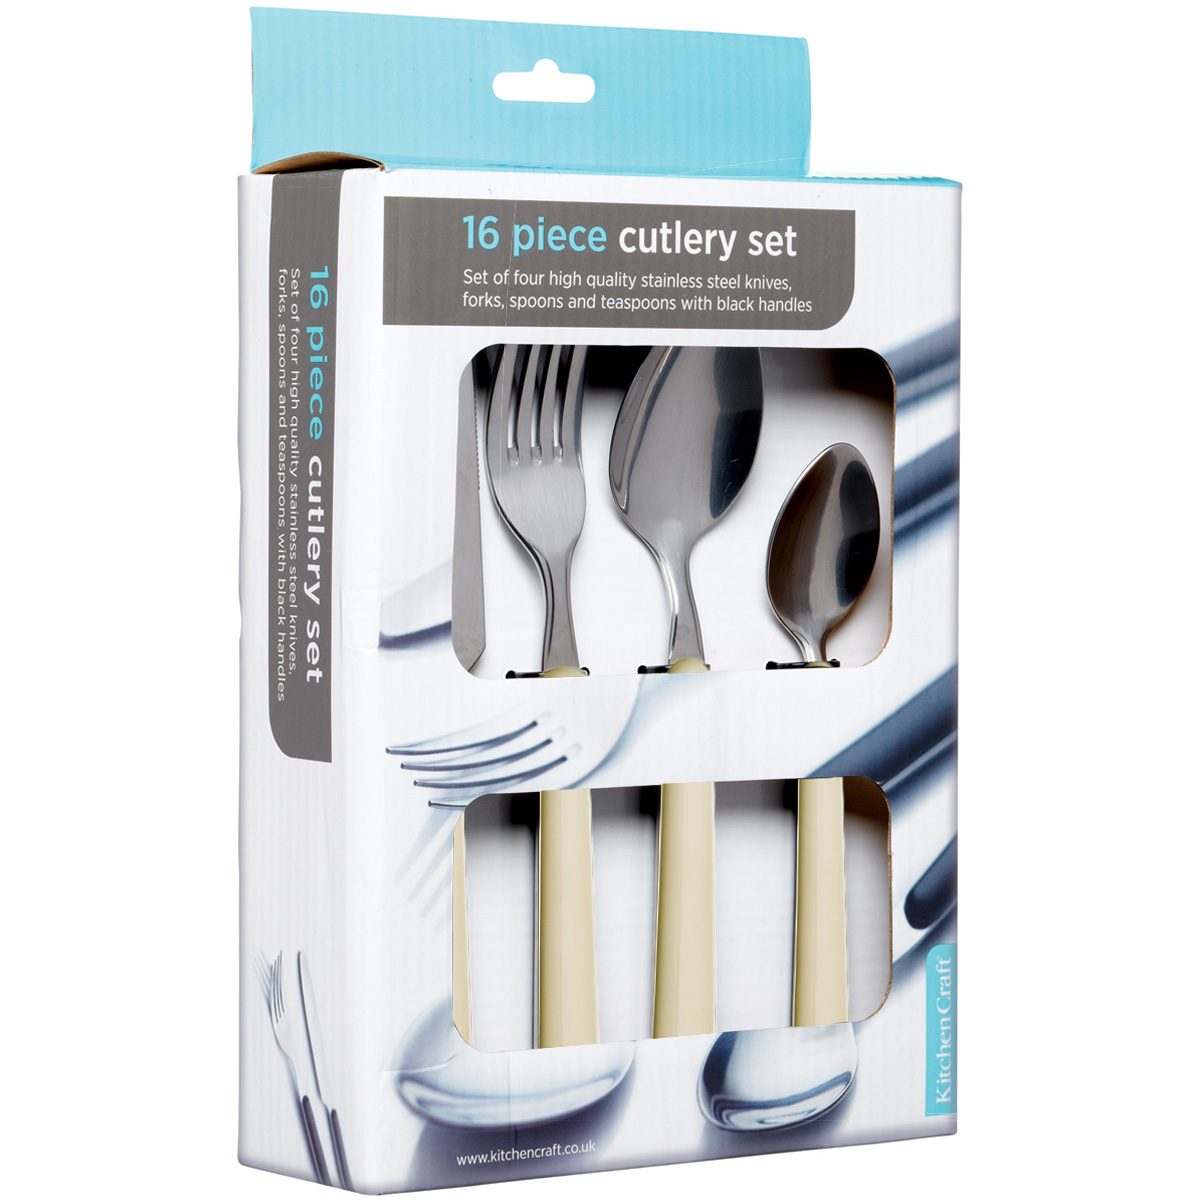 Spoons Forks Knives Set New Kitchencraft Stainless Steel Cream 16 Piece Cutlery